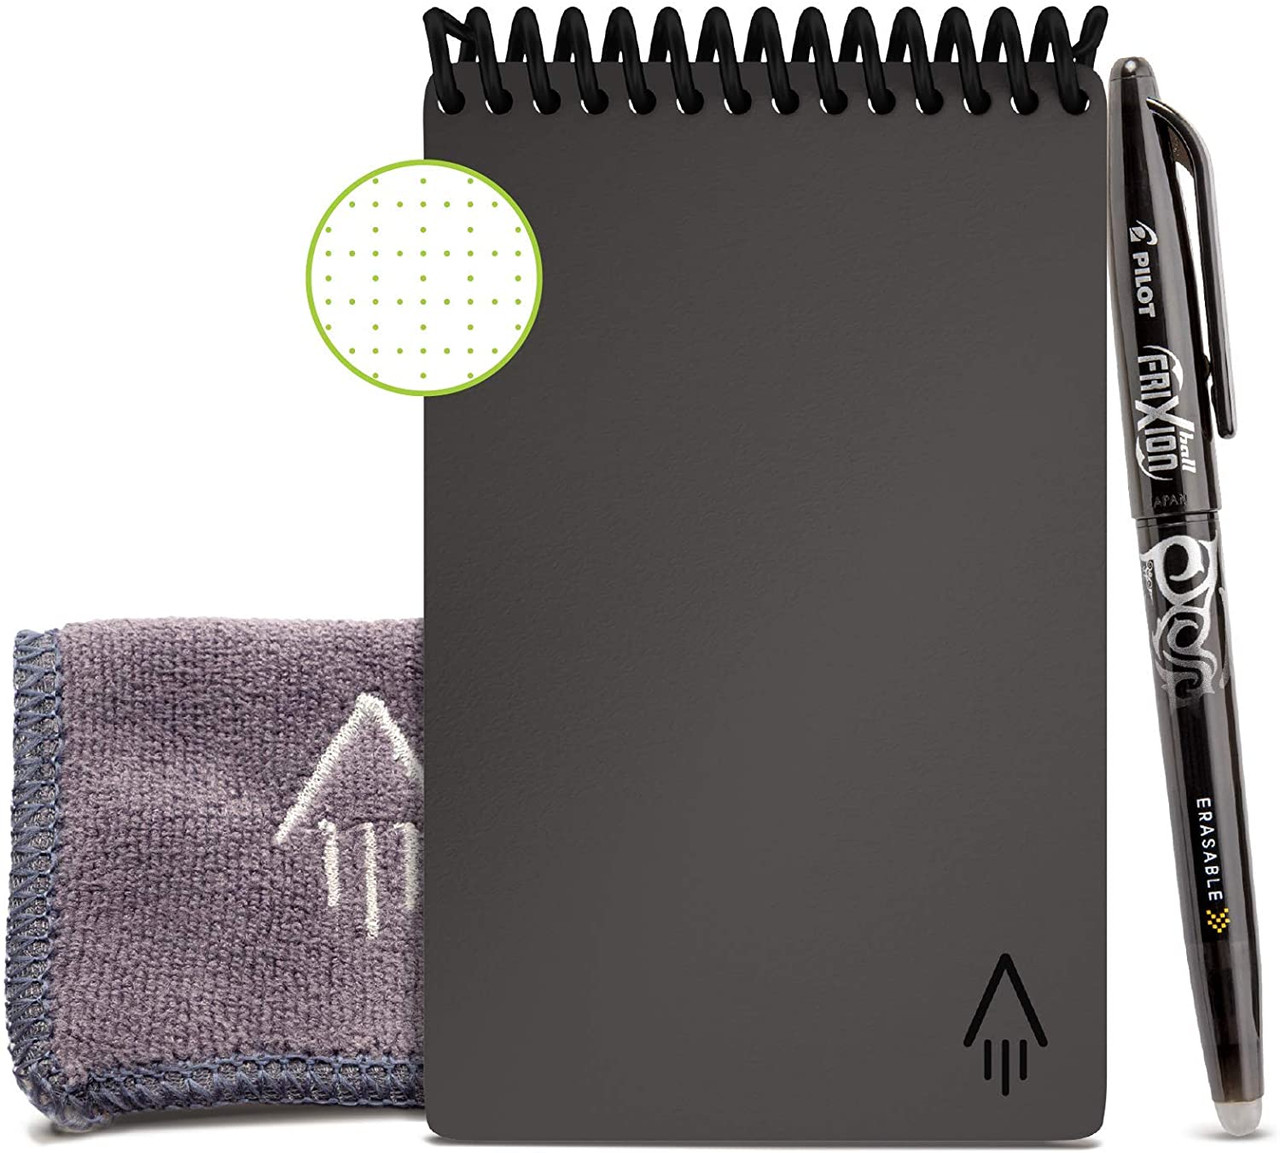 Rocketbook EVR-M-K-CIG Everlast Mini Smart Reusable Notebook with Pen and Microfiber Cloth, Space Gray